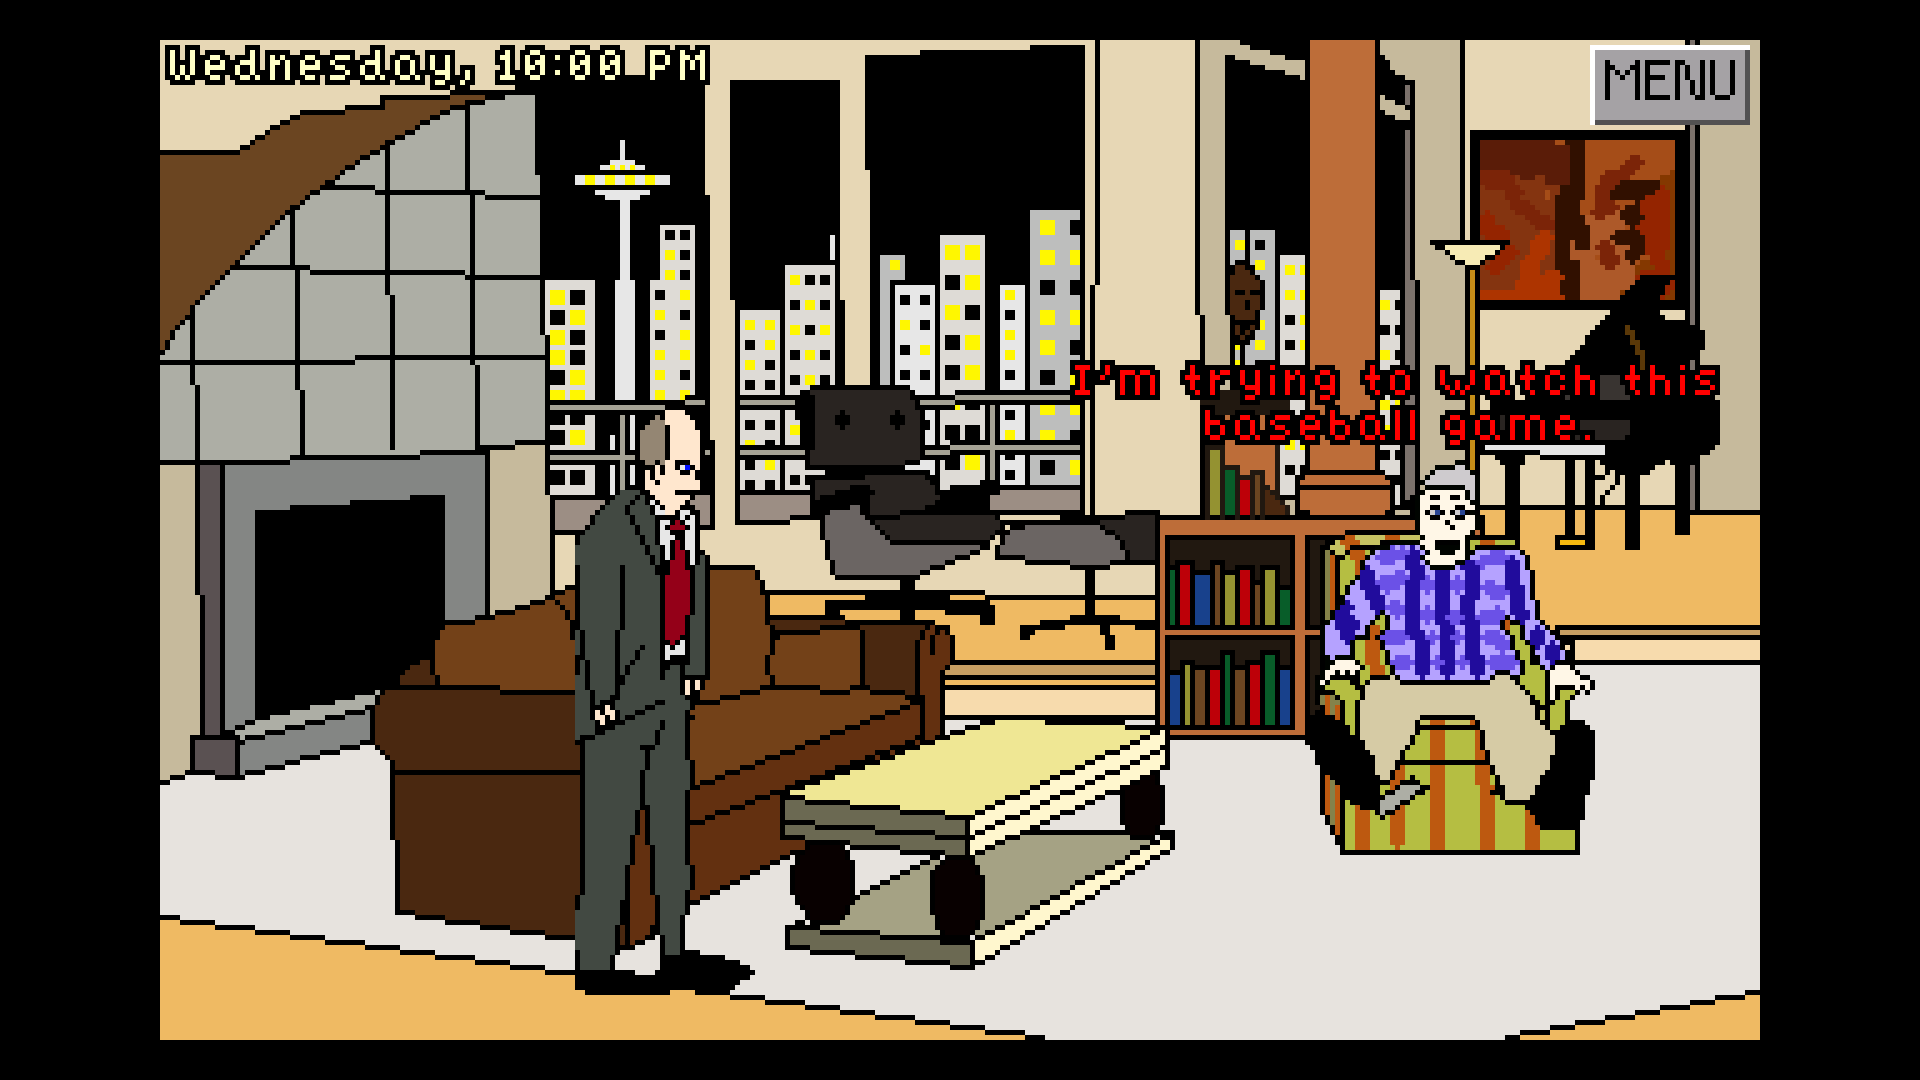 Screenshot 1 of Frasier Crane:  Seattle Rampage